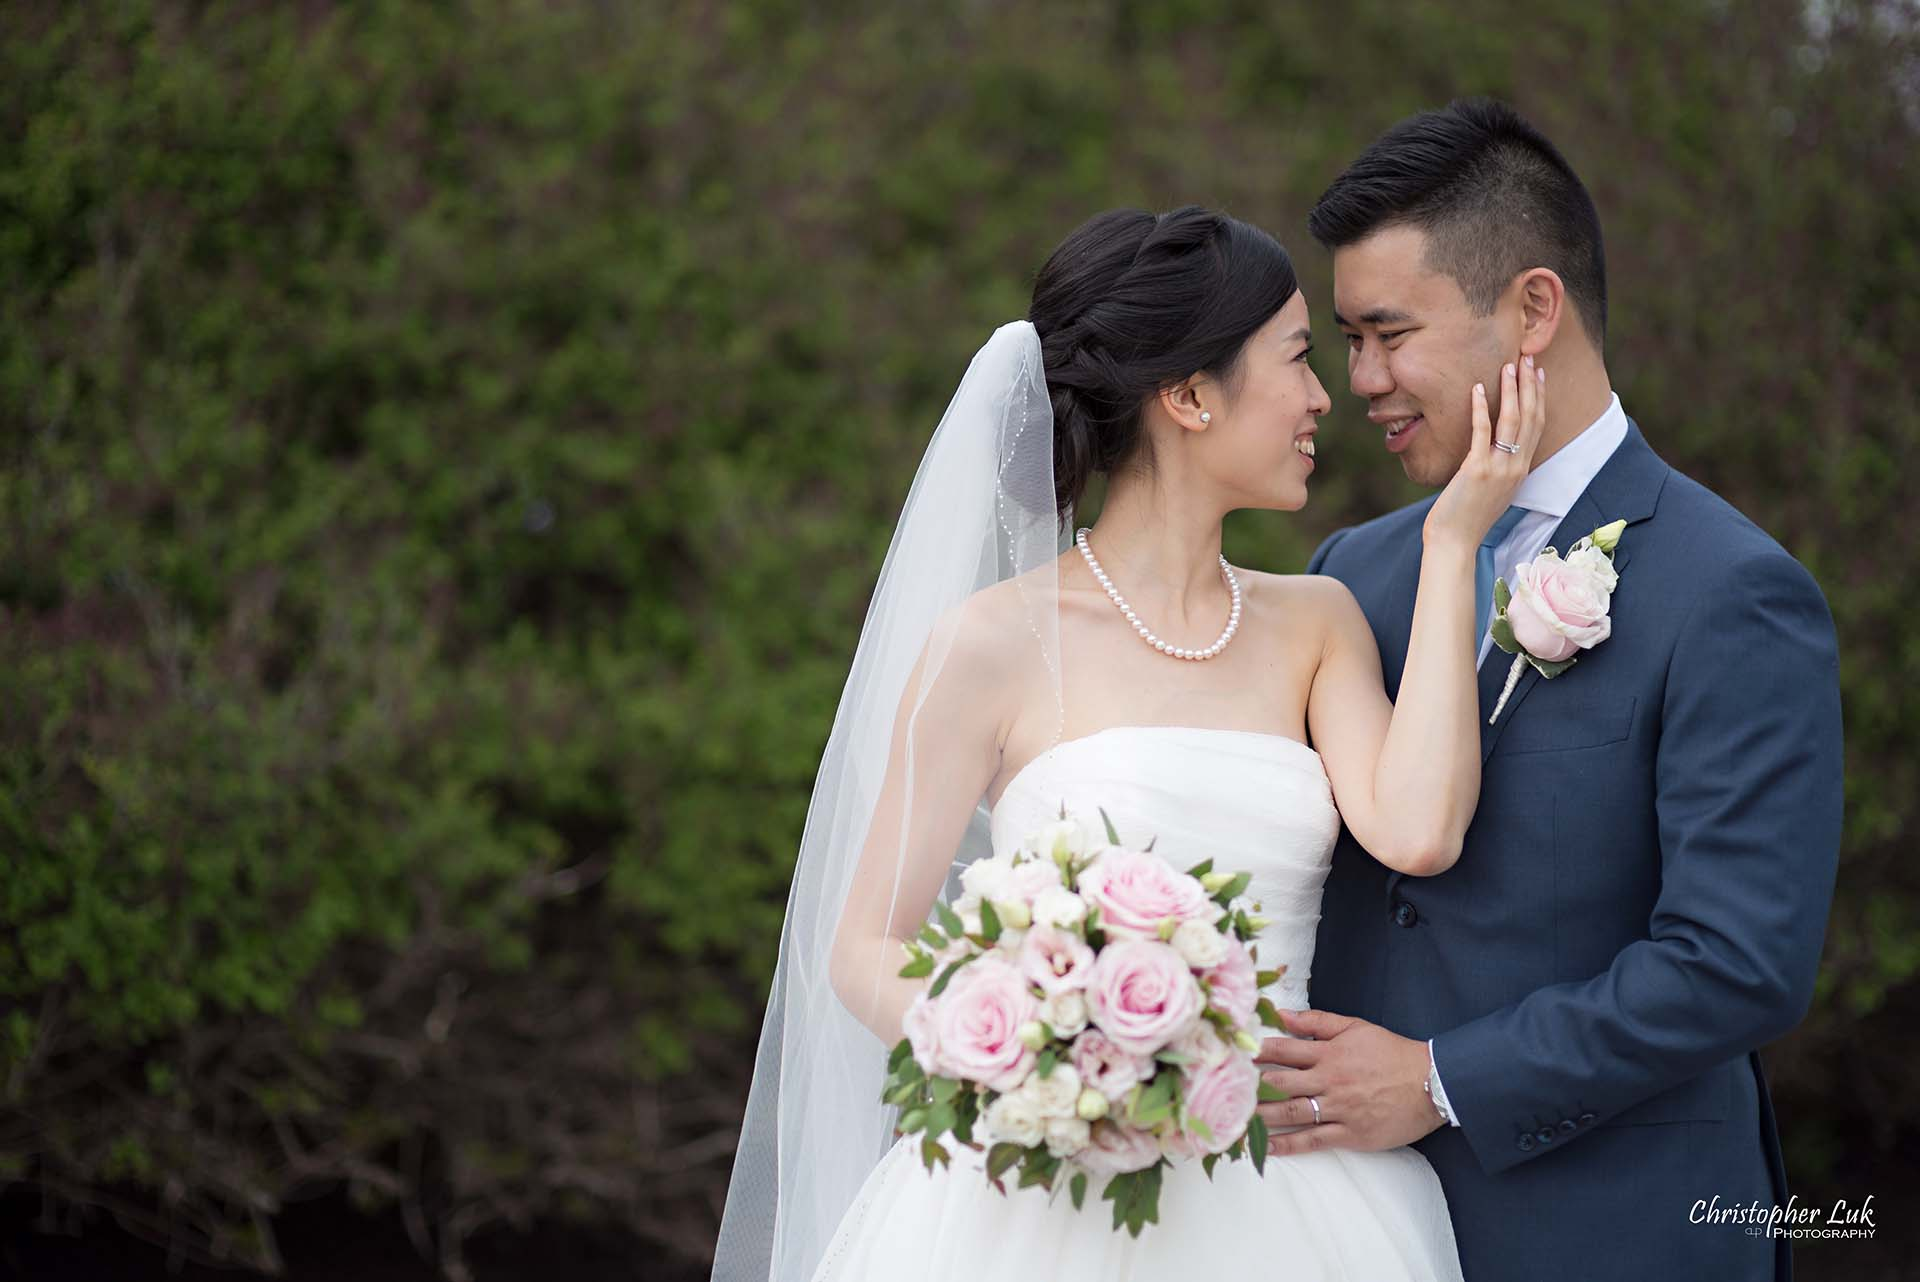 Christopher Luk Toronto Wedding Photographer Angus Glen Golf Club Markham Main Blue Barn Farm Historic Estate Building Together Natural Candid Photojournalistic Bride Groom Intimate Holding Each Other Hug Together Greenery